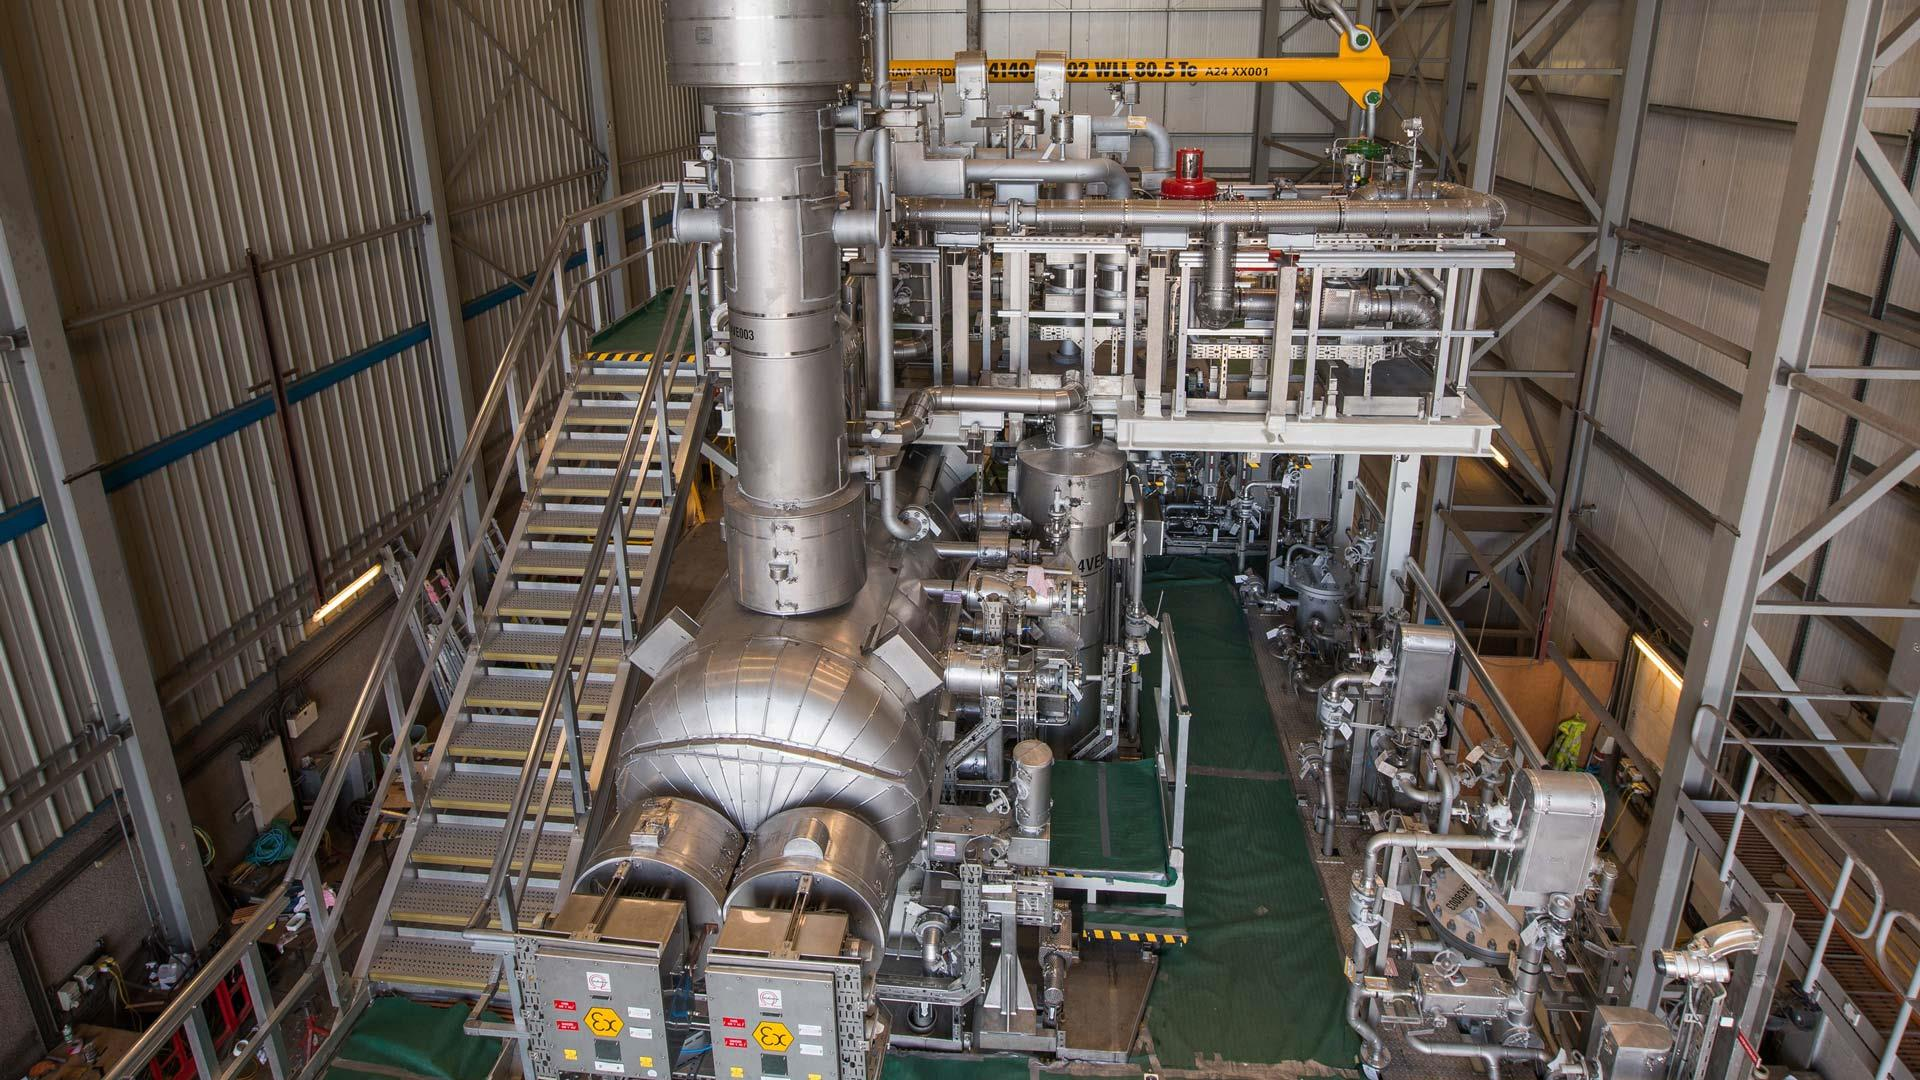 Inside view of a gas treatment plant